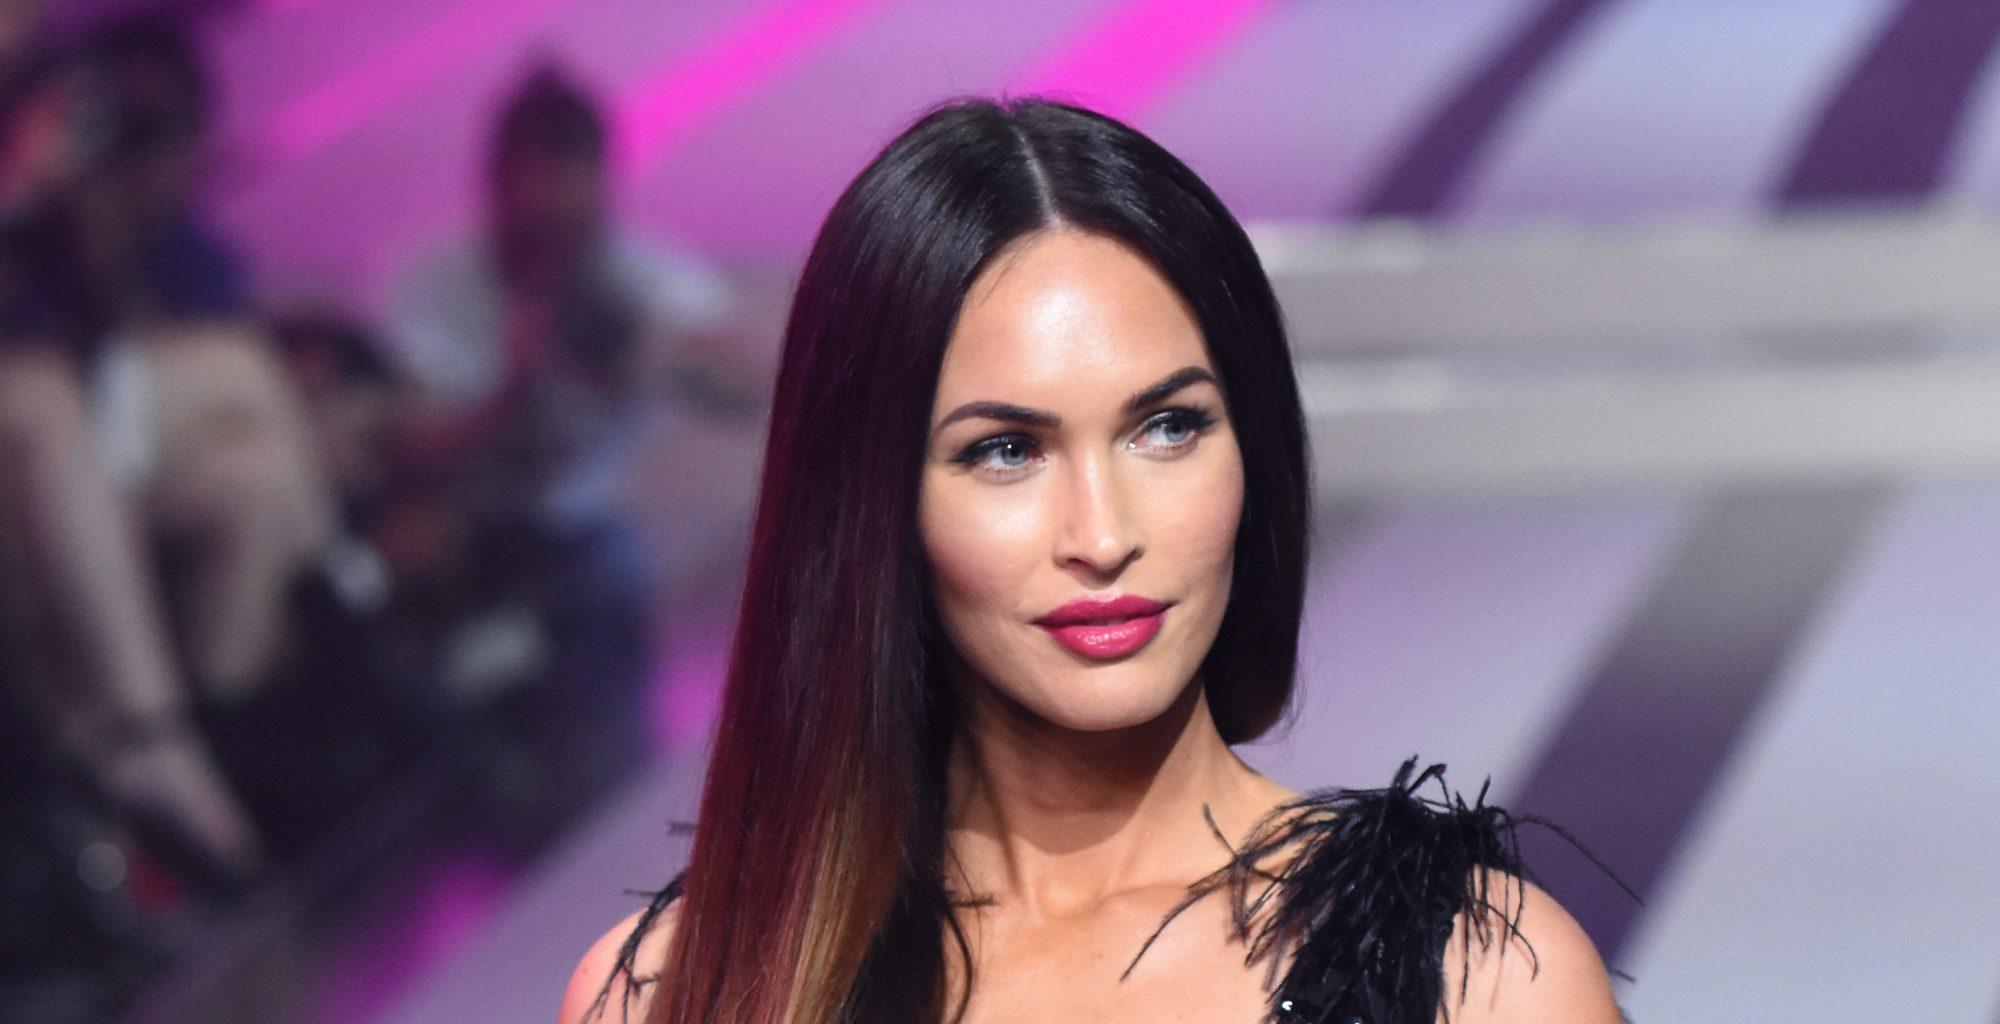 Megan Fox Compares Criticism In Her Career As A 'Self-Imposed Prison'